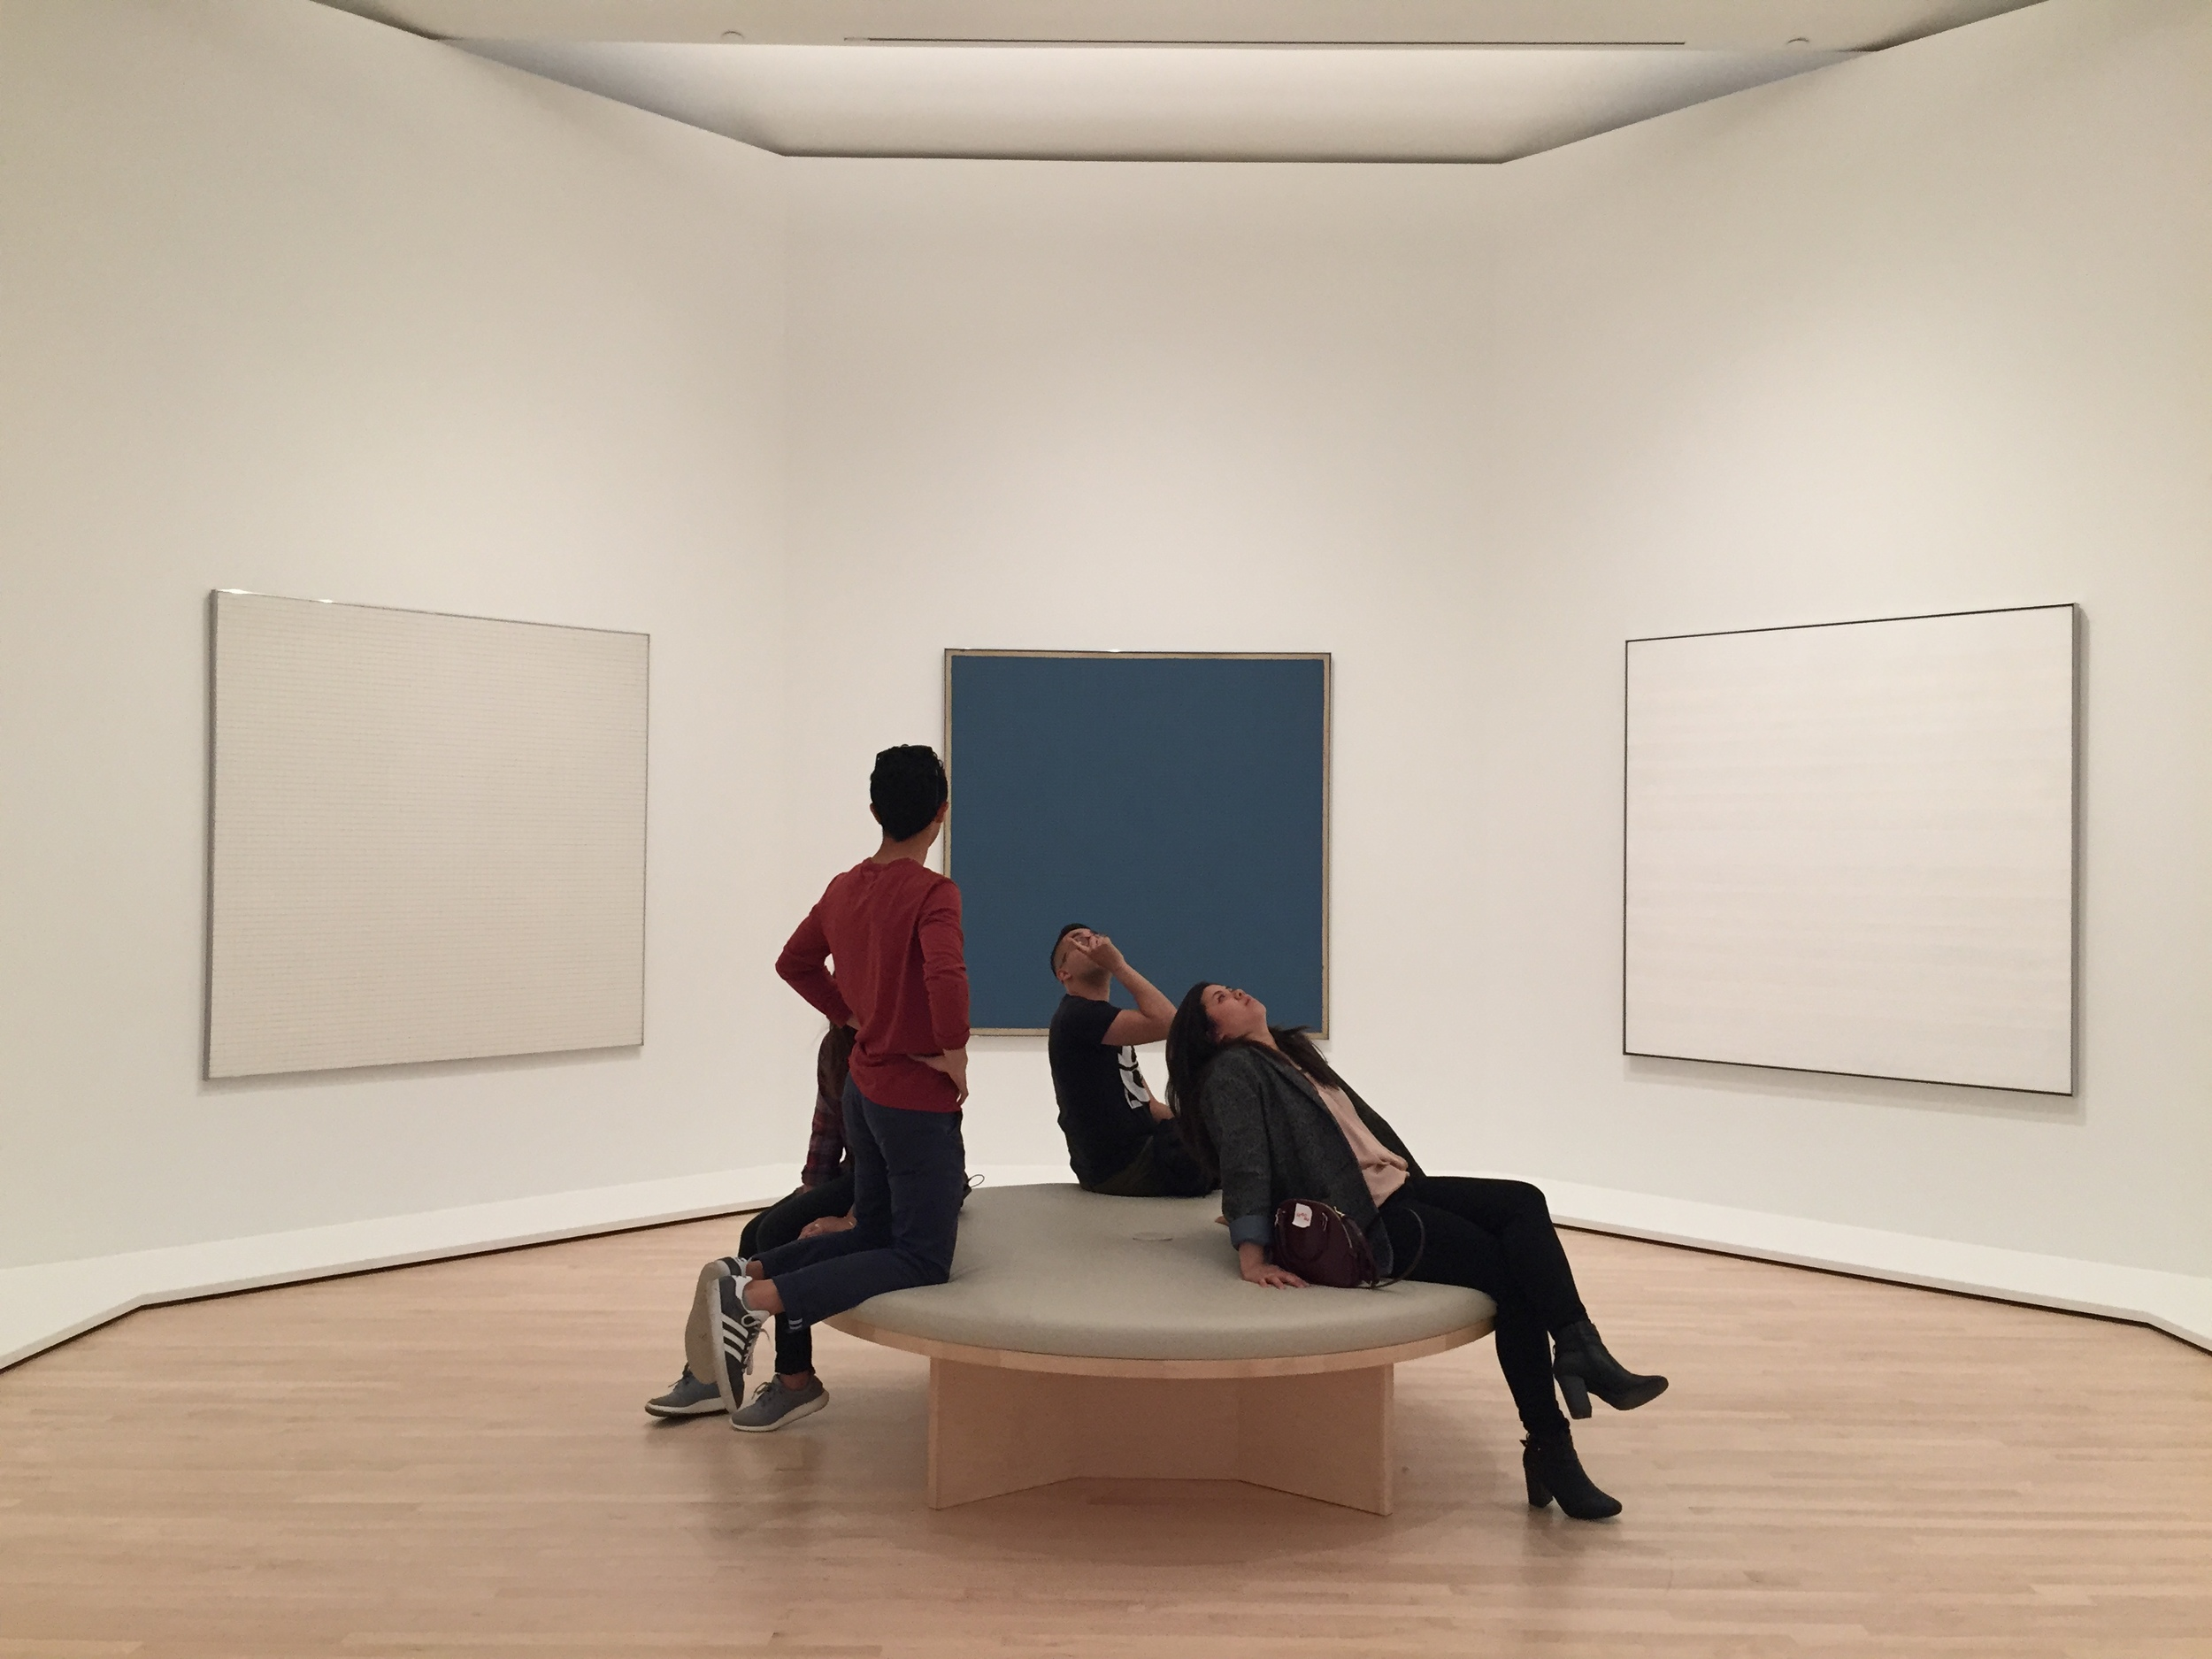 Top MOMA SF by Brittney Fong.JPG